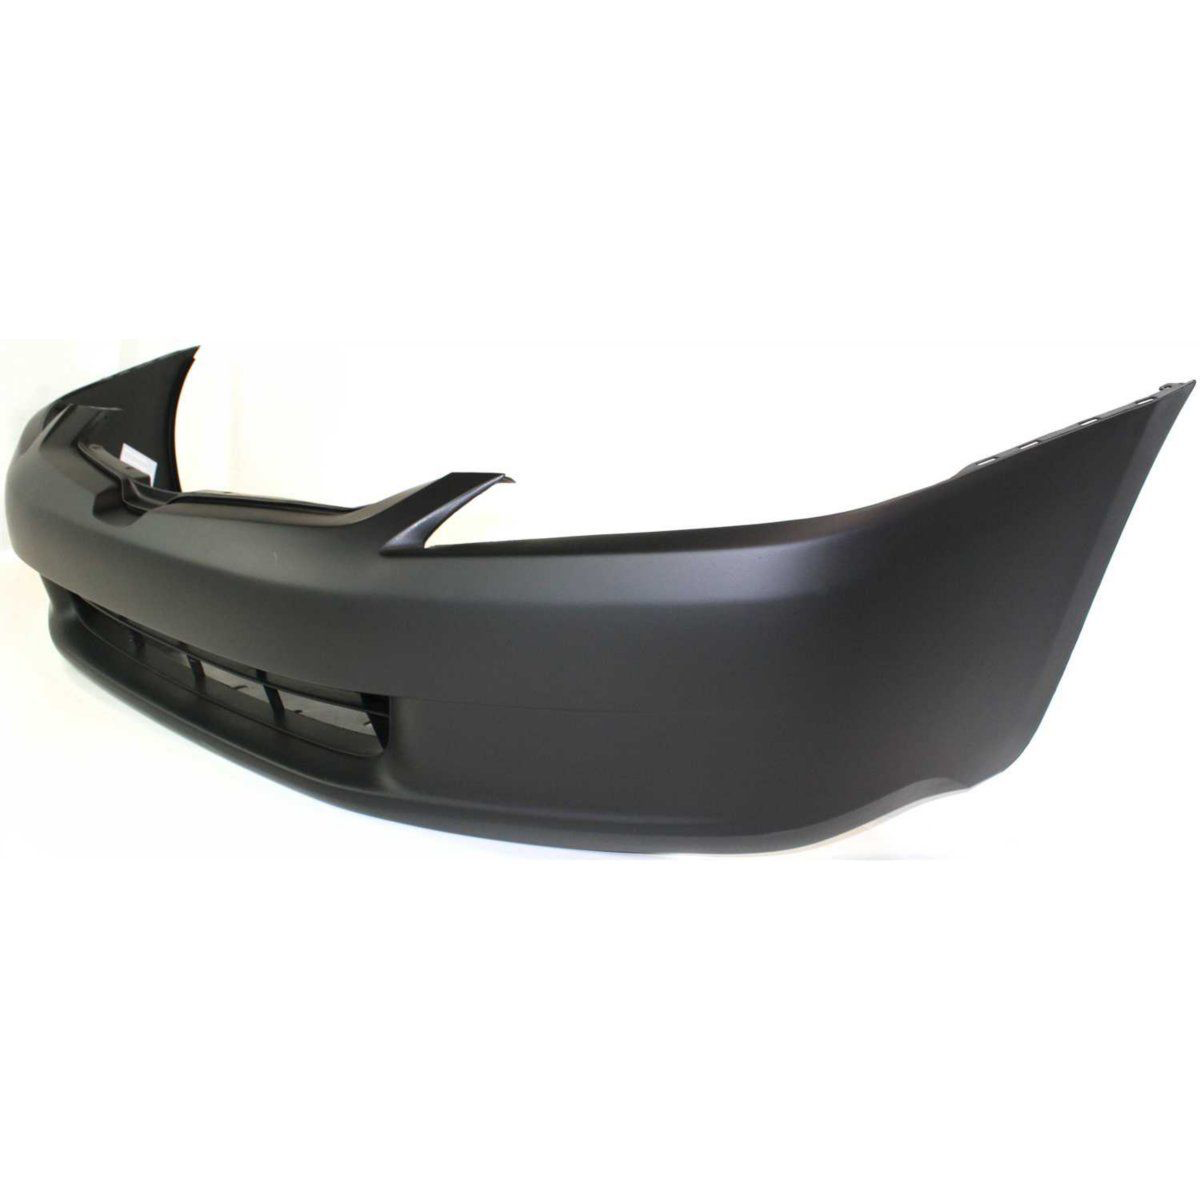 2003-2005 HONDA ACCORD Front Bumper Cover 4dr sedan Painted to Match